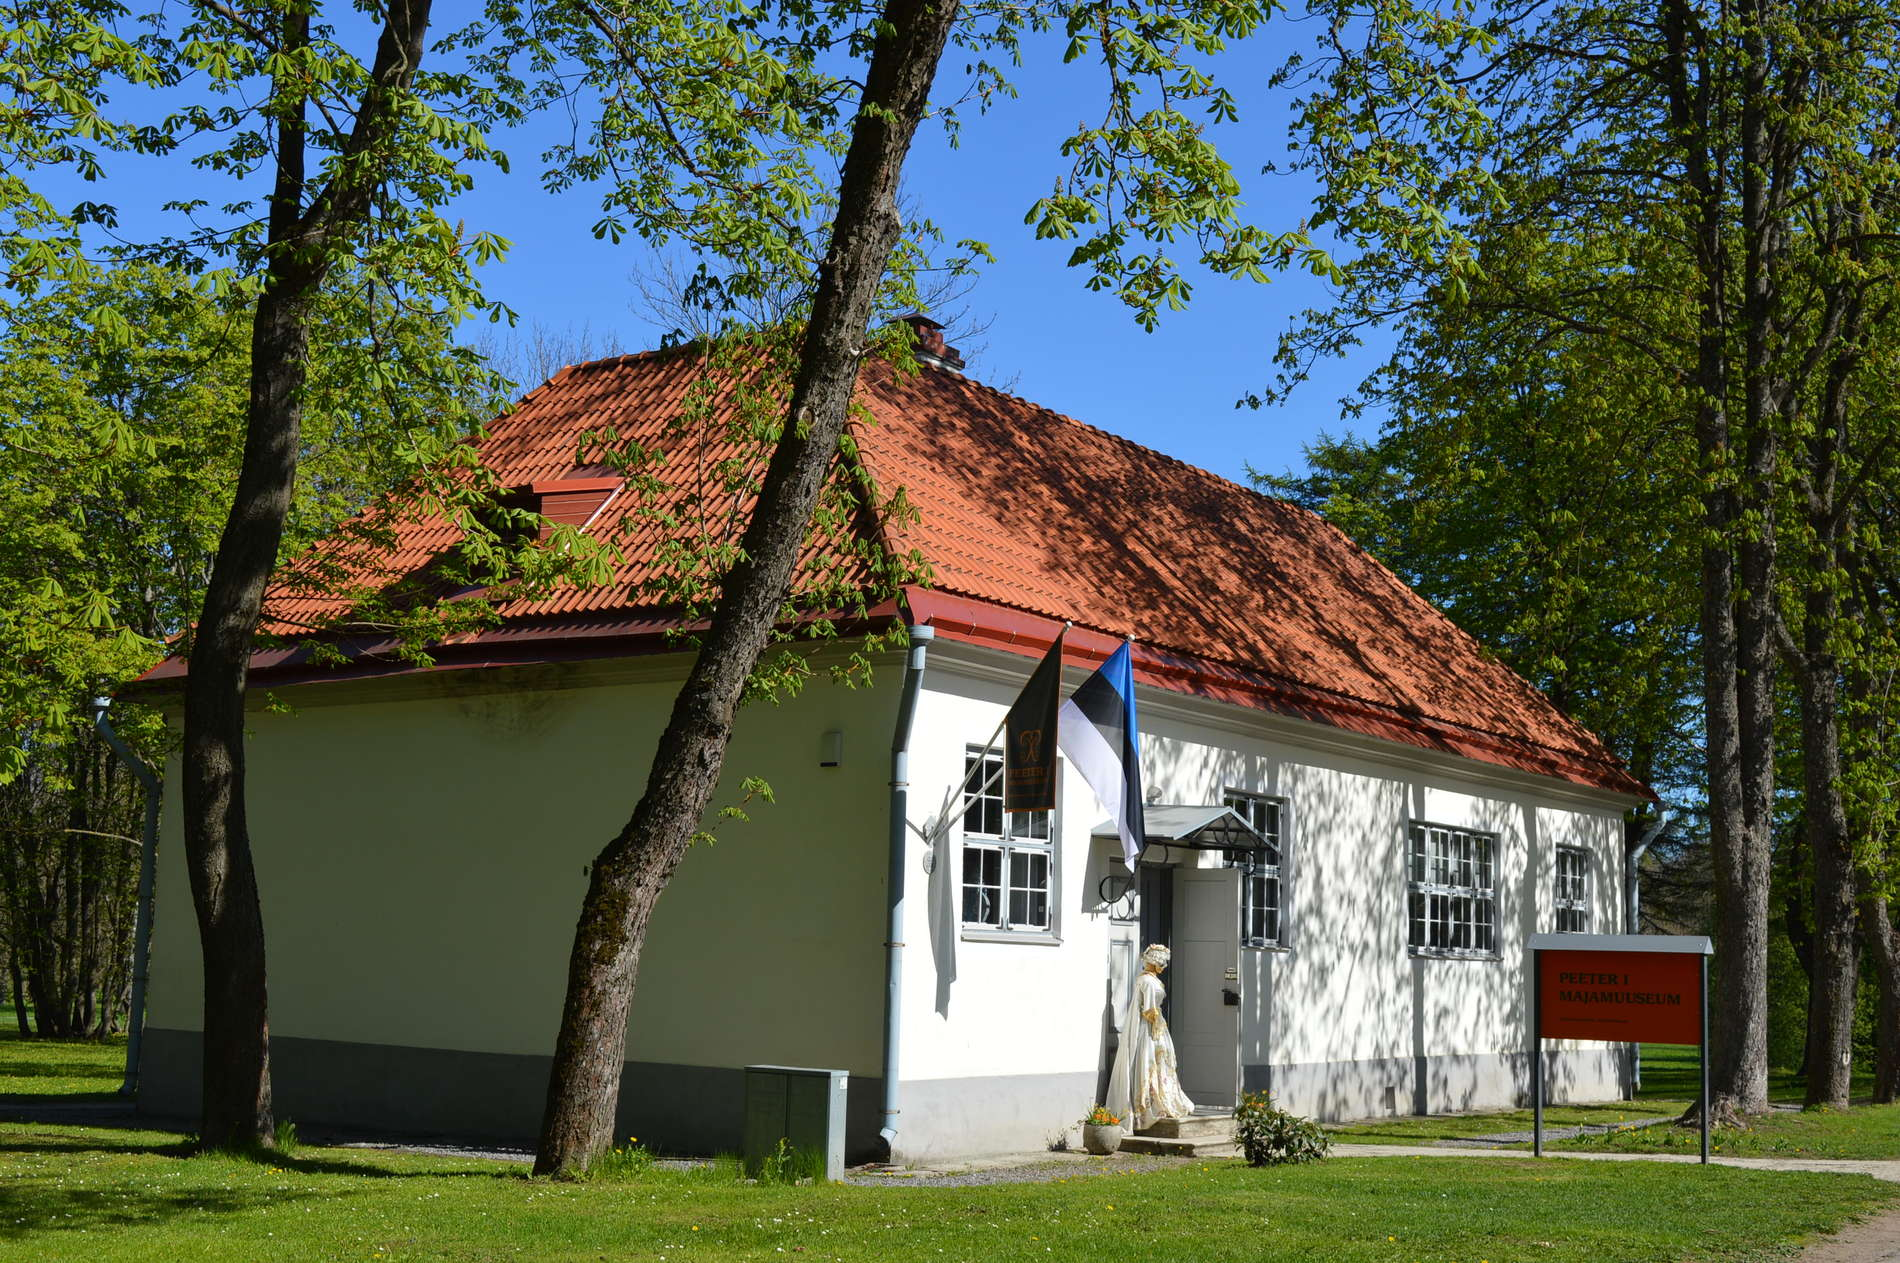 External view of the Peter the Great House Museum in Tallinn, Estonia